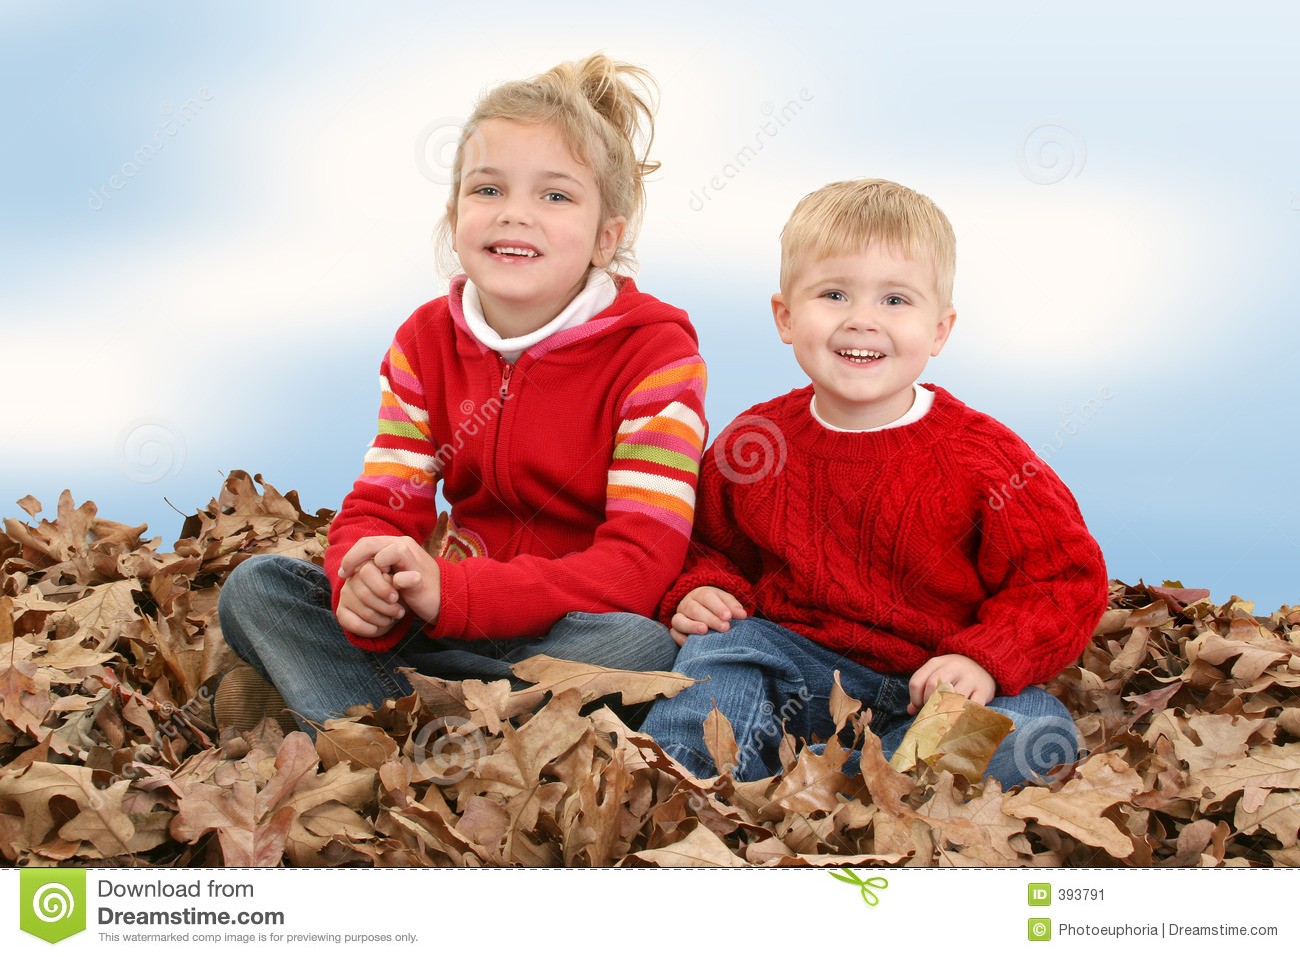 Brother and Sister Sitting in Pile of Leaves